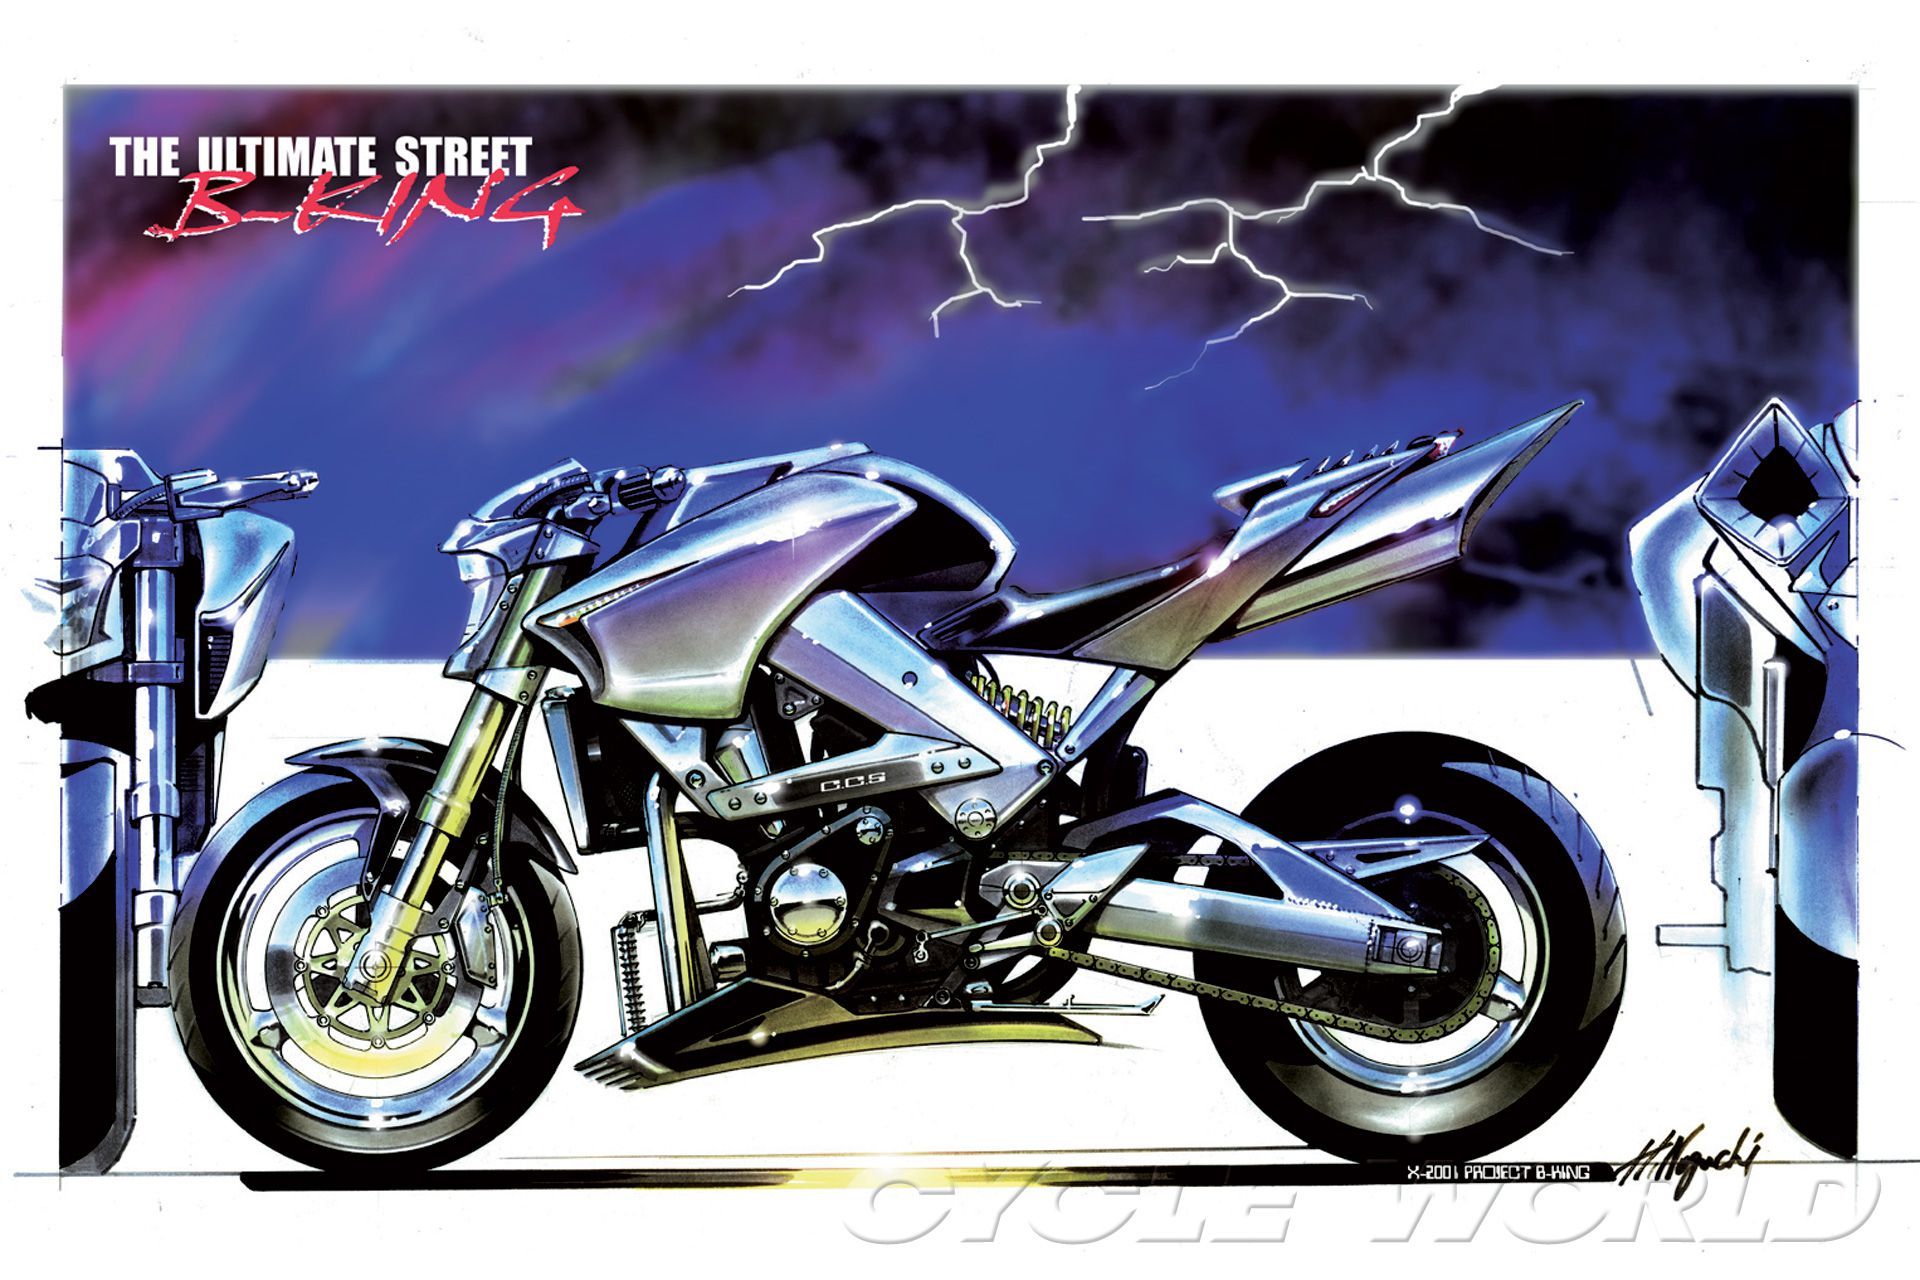 Easy to get crazy on paper? 2001 Suzuki B-King concept became production minus its supercharger.